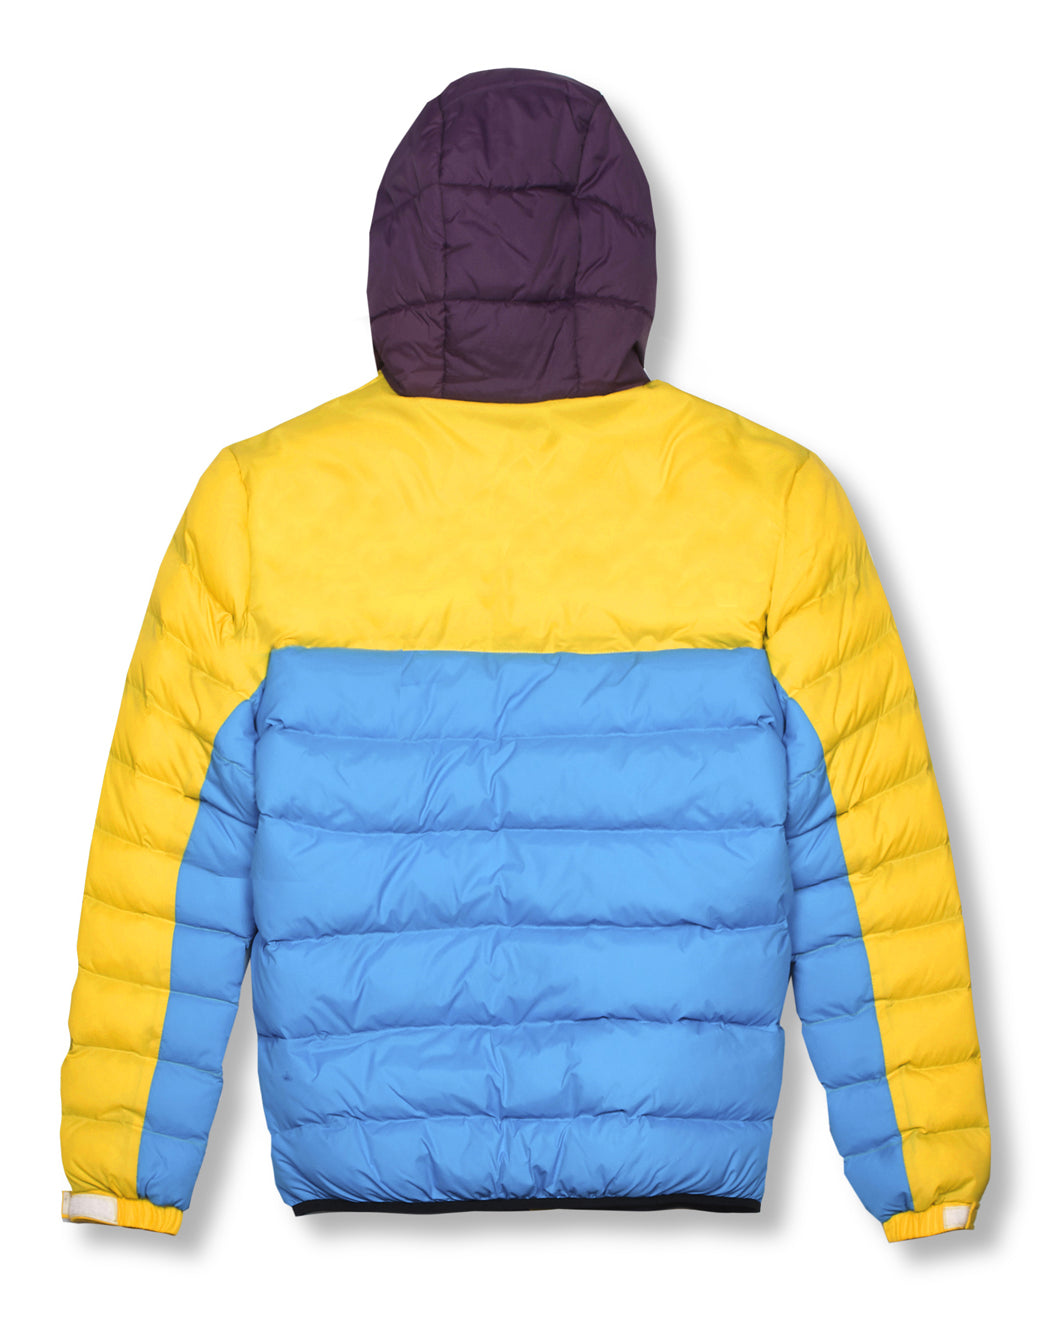 Money Clothing AW18 hooded colour block puffer jacket